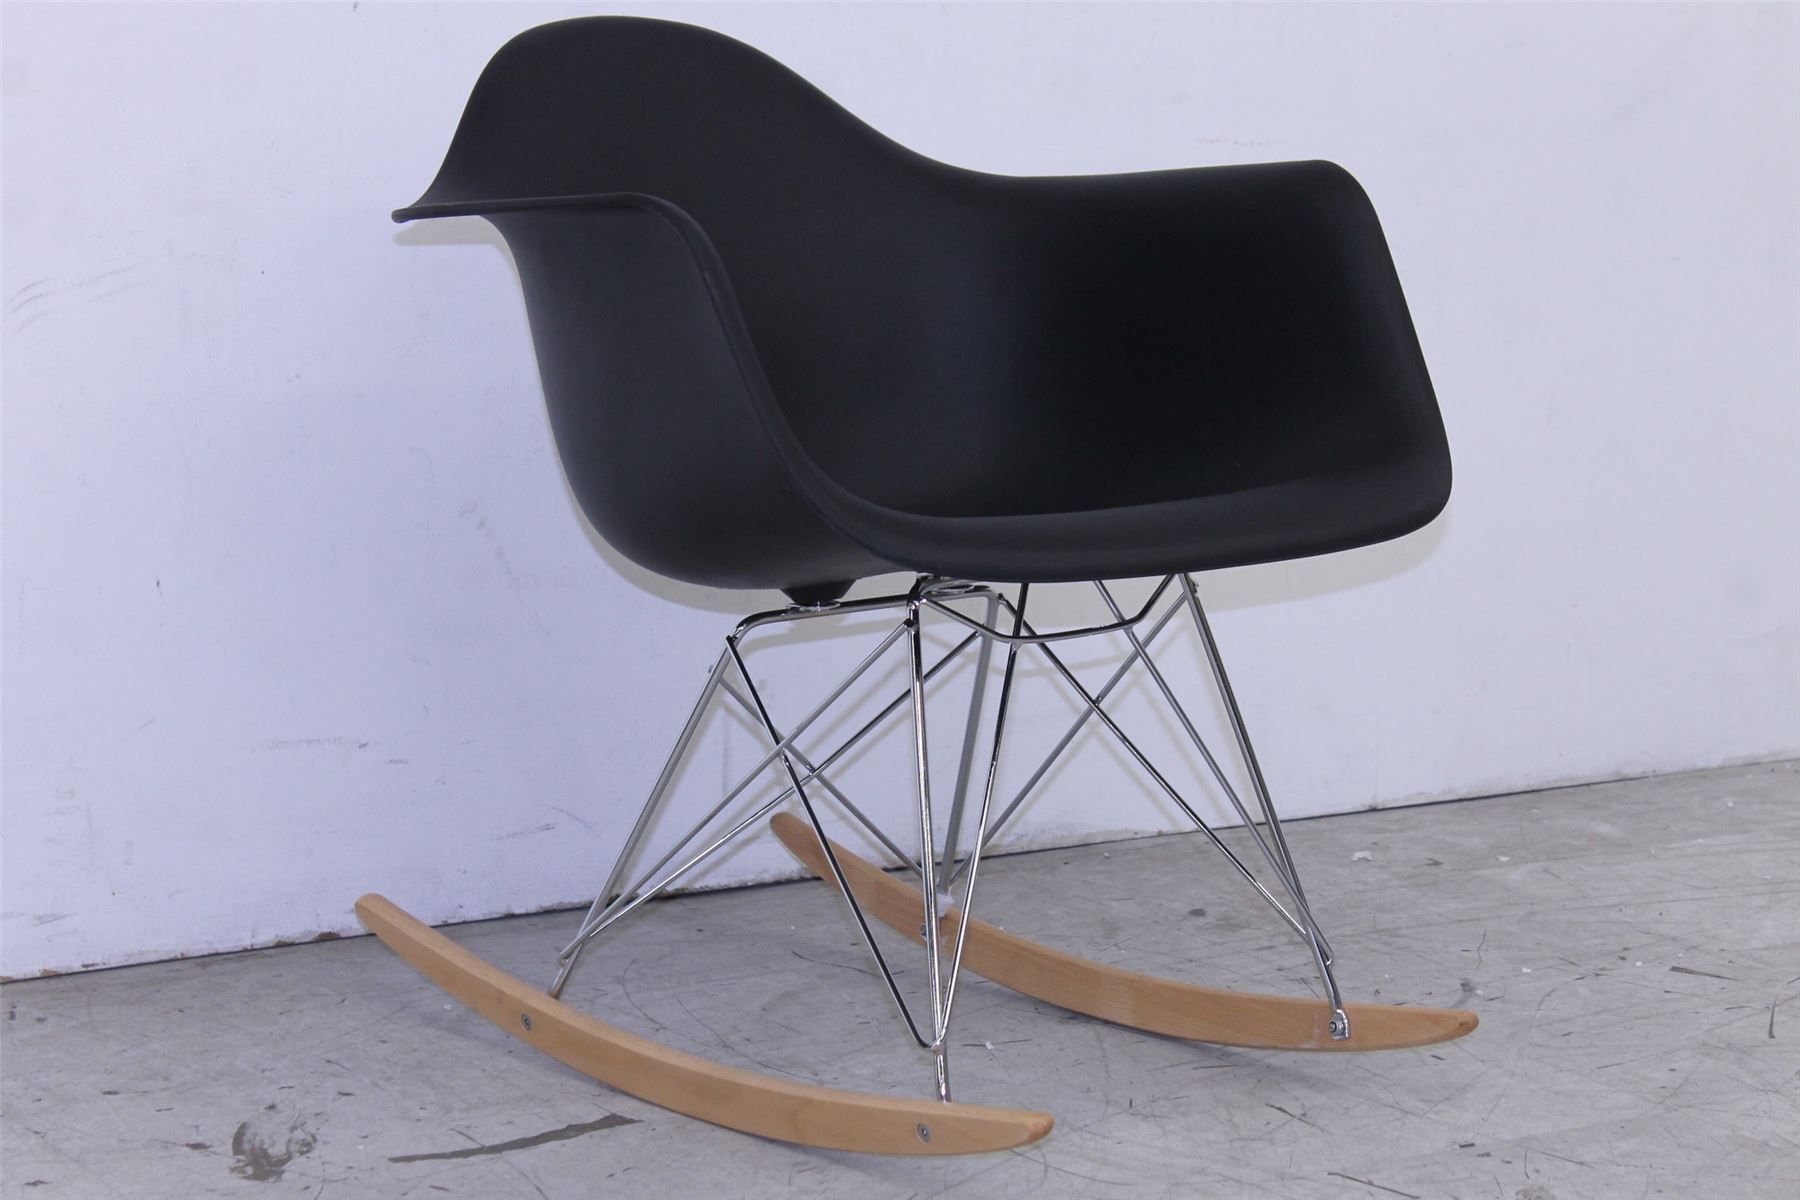 retro chrome chairs swing chair outdoor bunnings new vintage style mid century lounge rocking